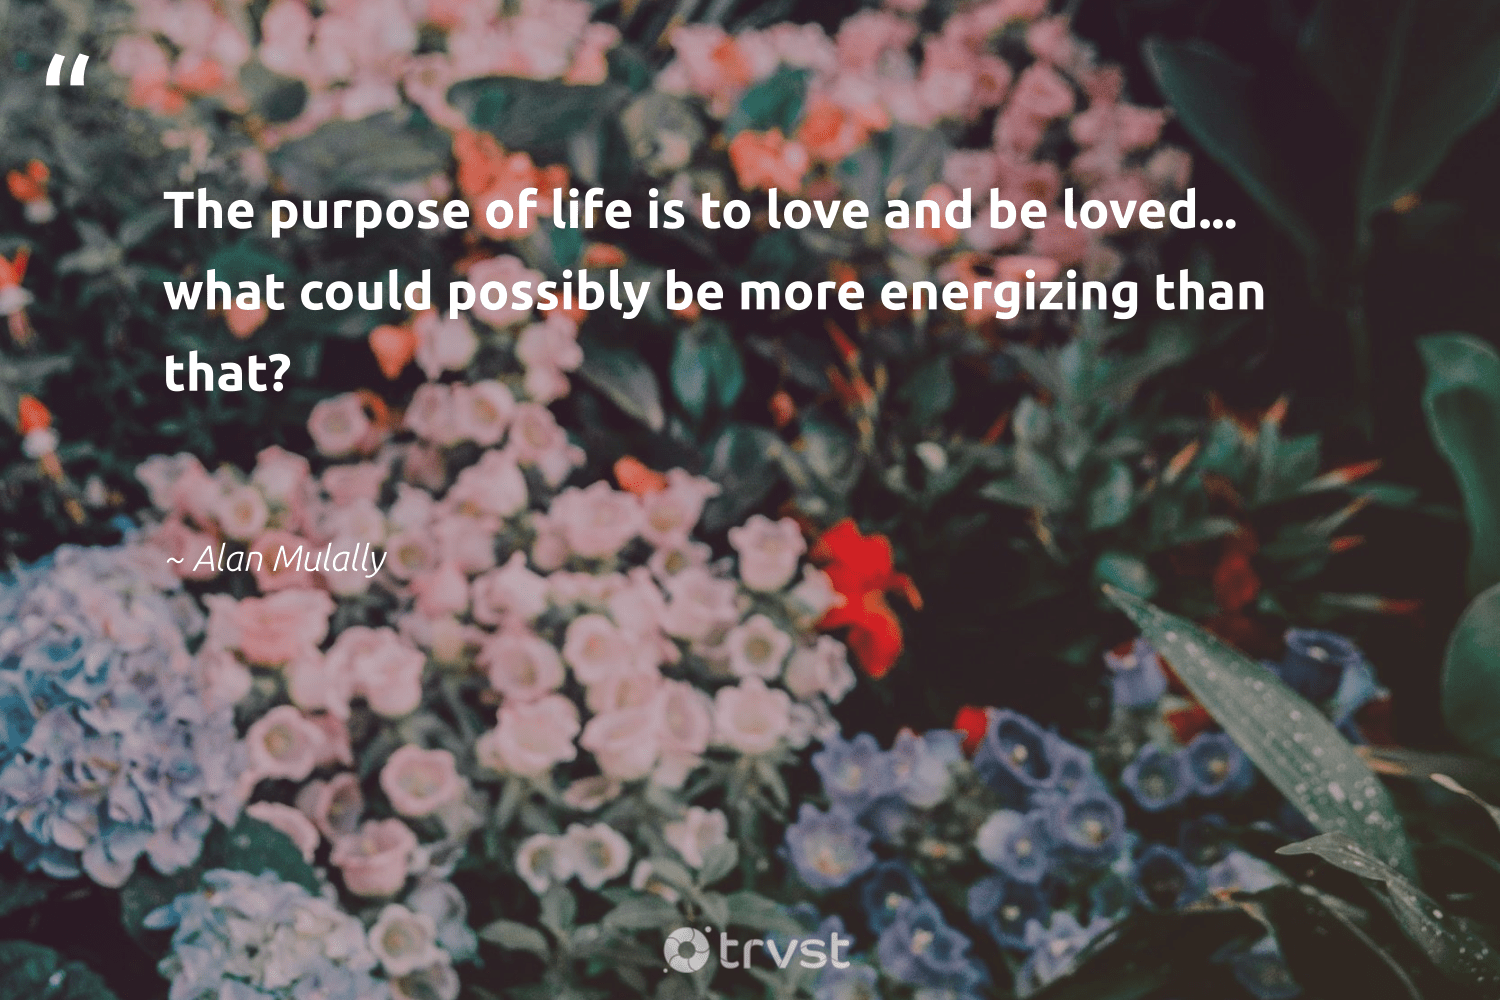 """""""The purpose of life is to love and be loved... what could possibly be more energizing than that?""""  - Alan Mulally #trvst #quotes #purpose #love #purposedriven #mindset #health #planetearthfirst #findingpupose #changemakers #nevergiveup #dogood"""